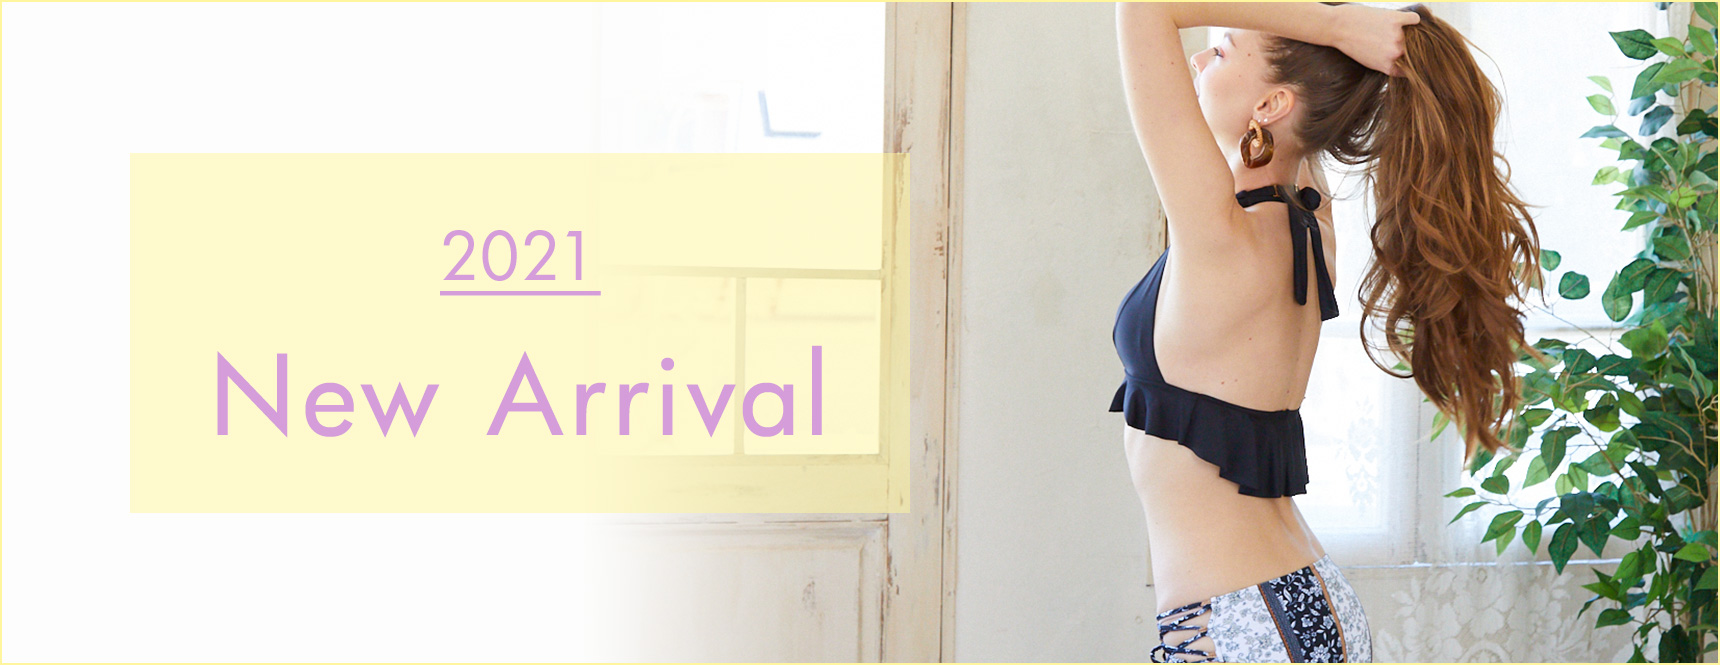 2021New Arrival